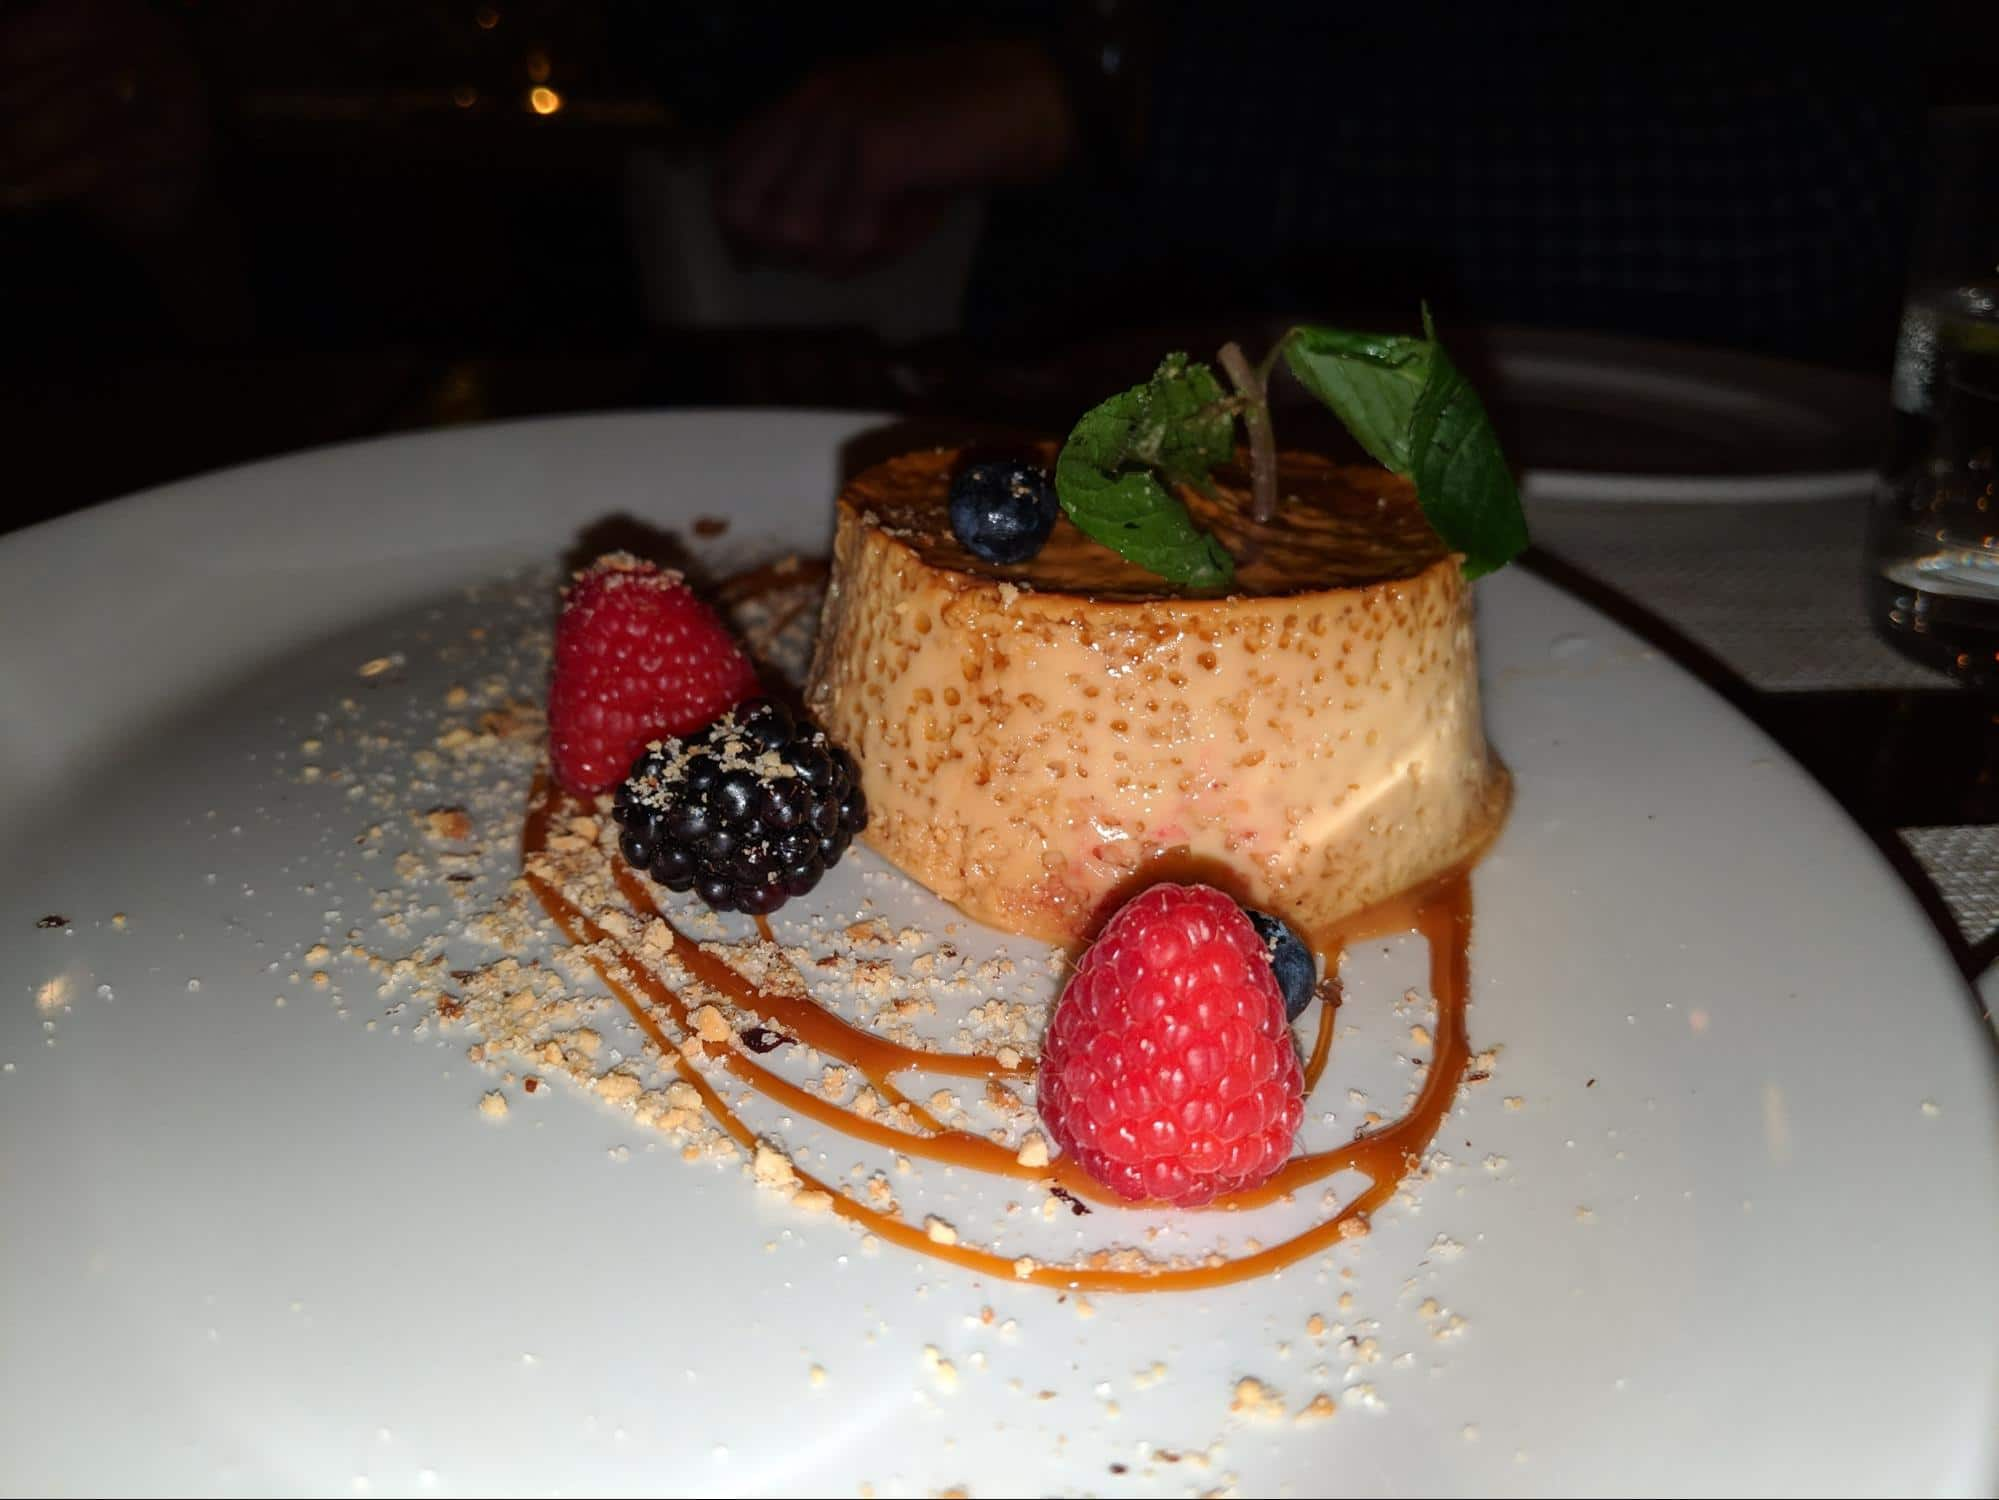 Flan is a egg yolk, milk and sugar treat topped with runny caramel sauce